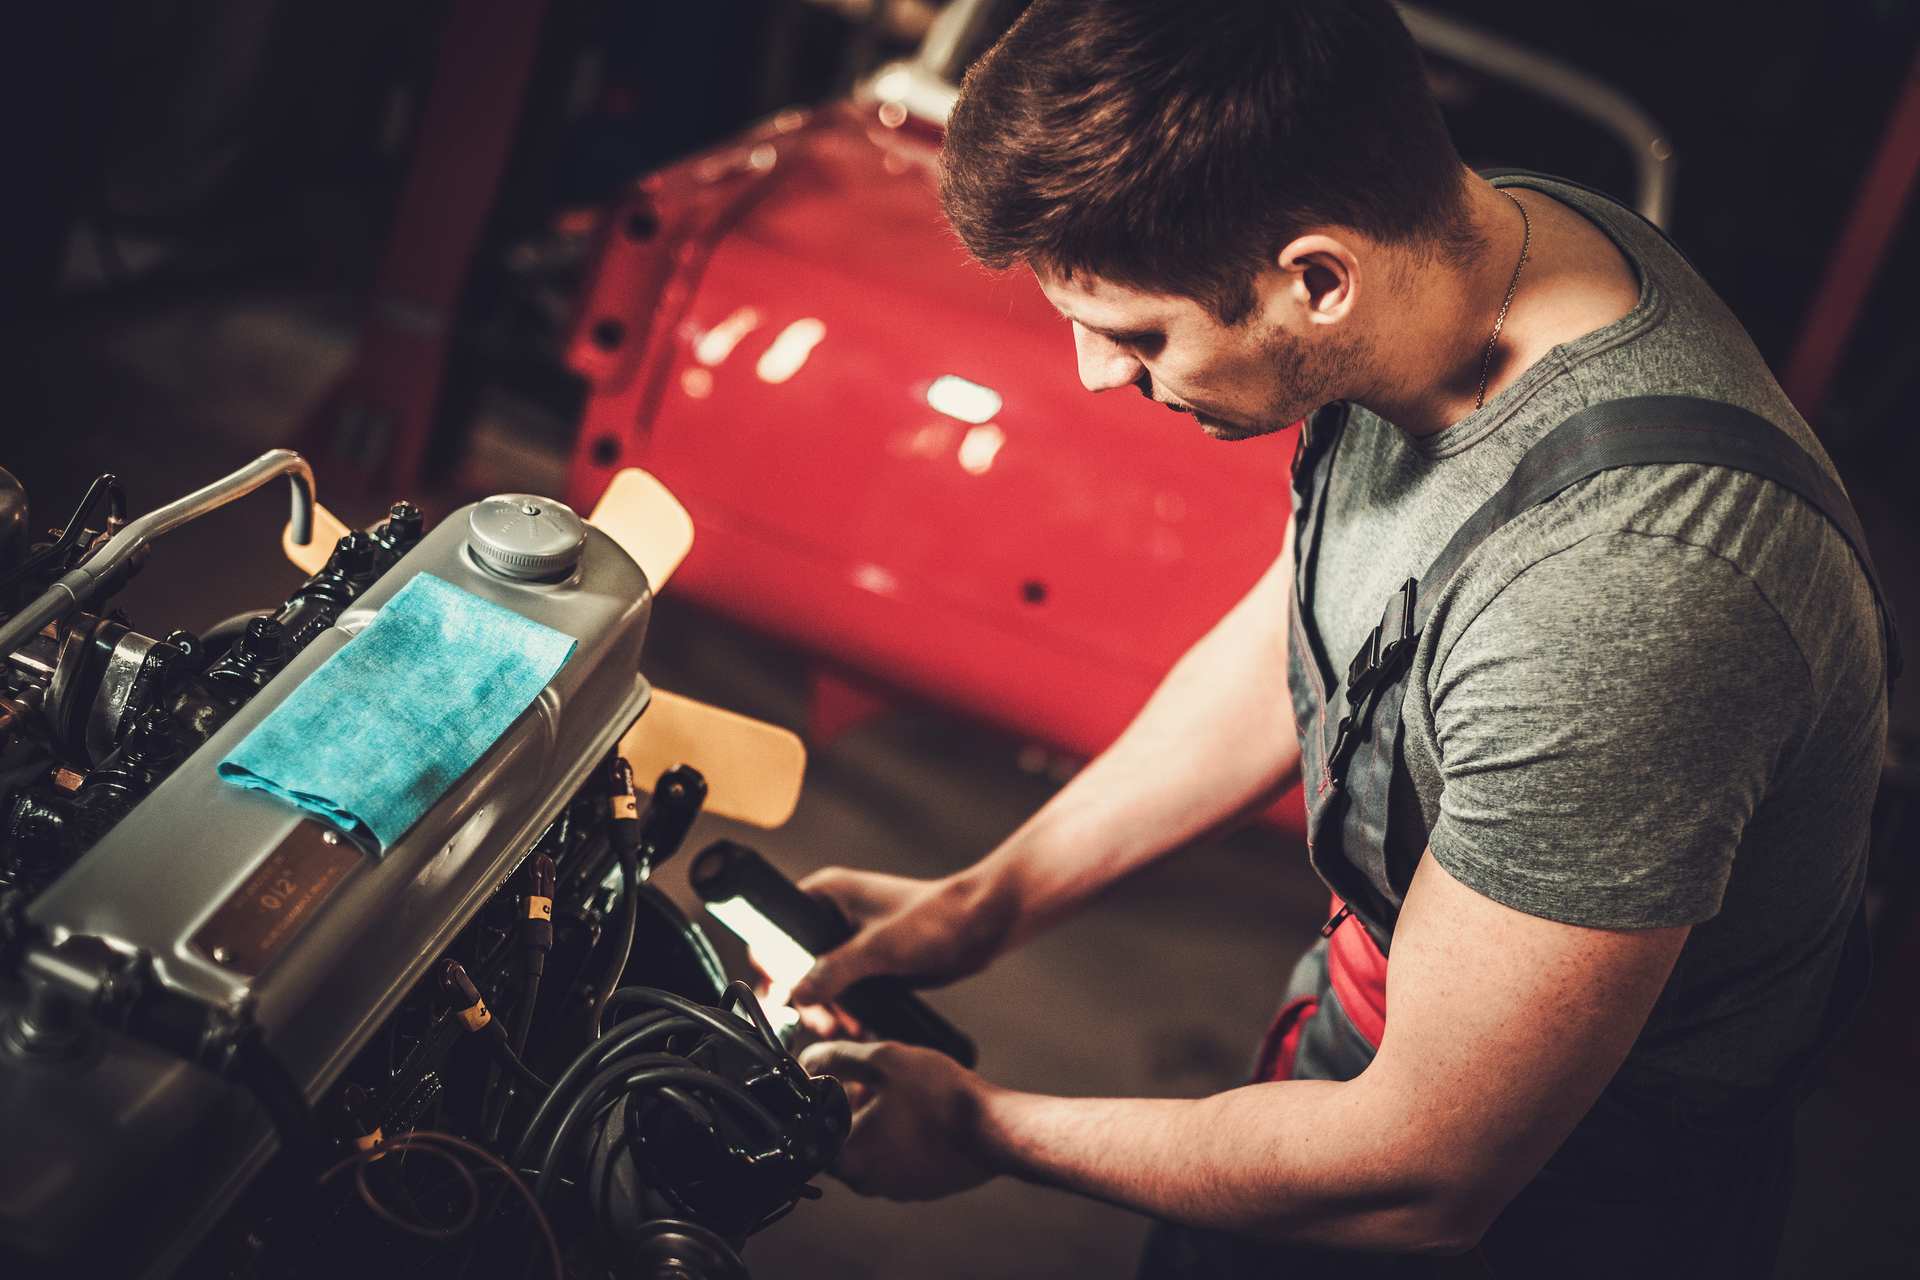 Classic Car Regular Servicing Improves Safety top tips